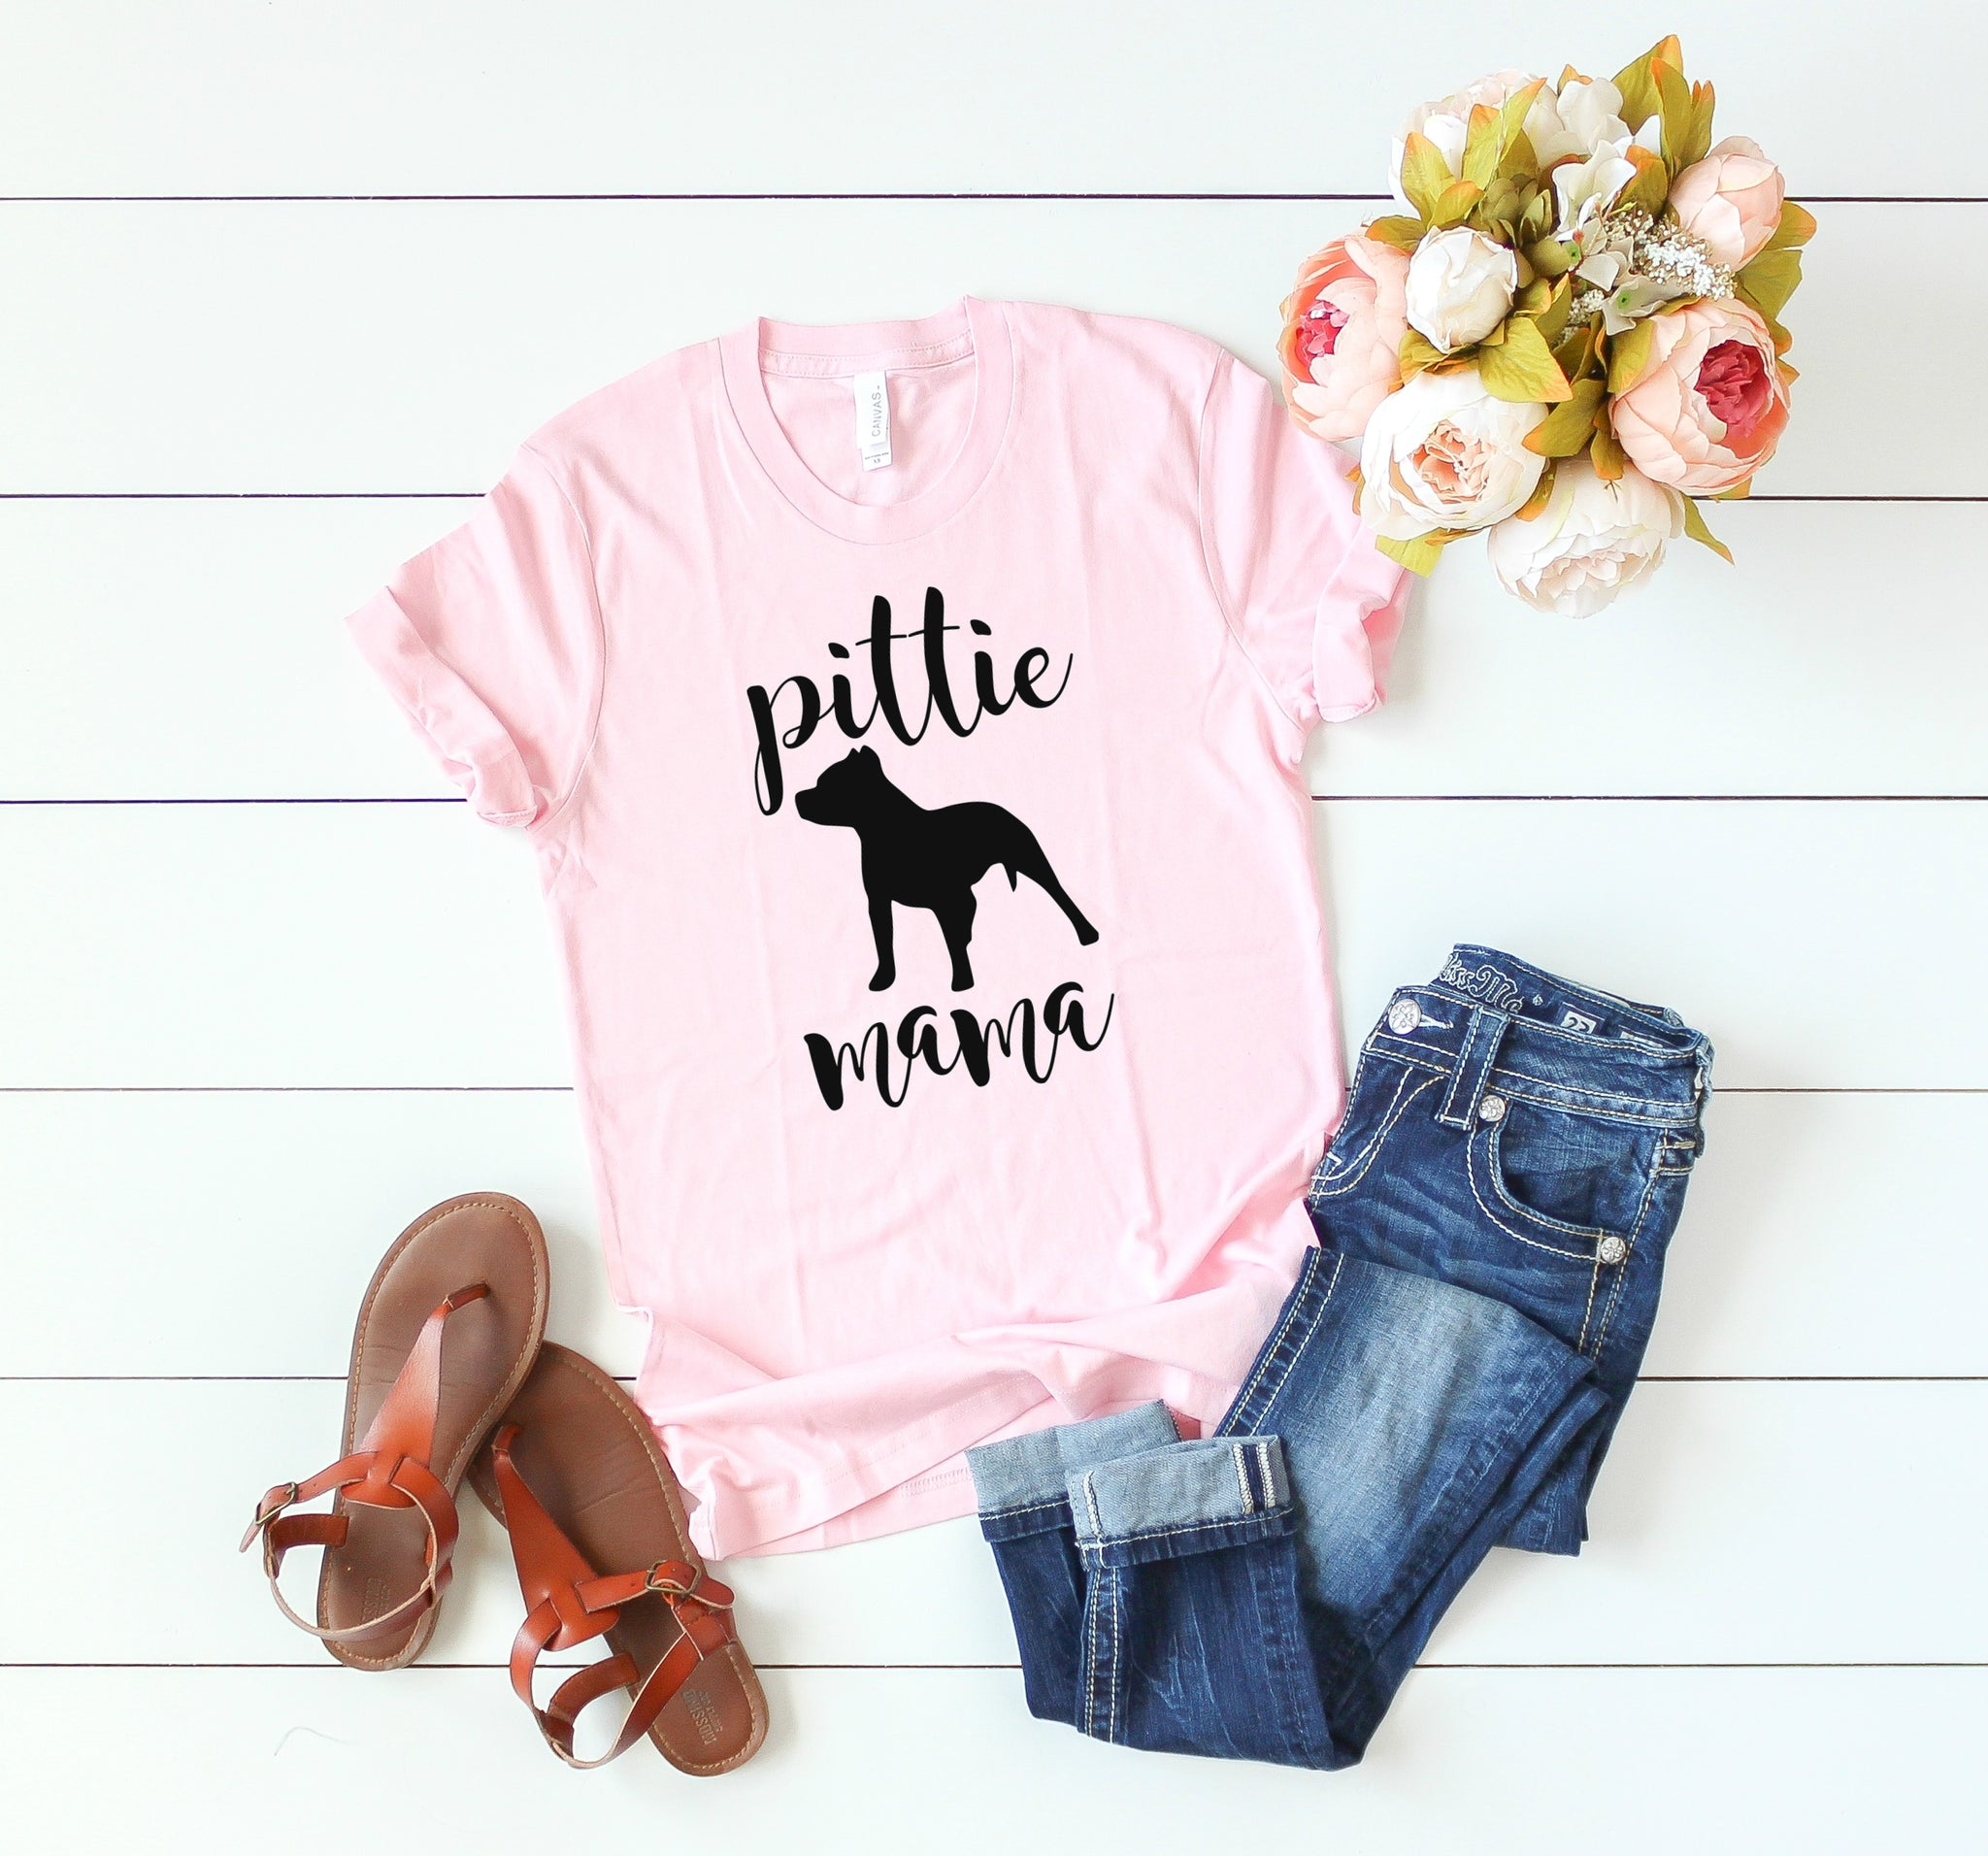 Pittie Mama Tee, Pitbull Mama Tee, Pitbull Mom Tee, Pibull Shirt - Wooden Heart Designs